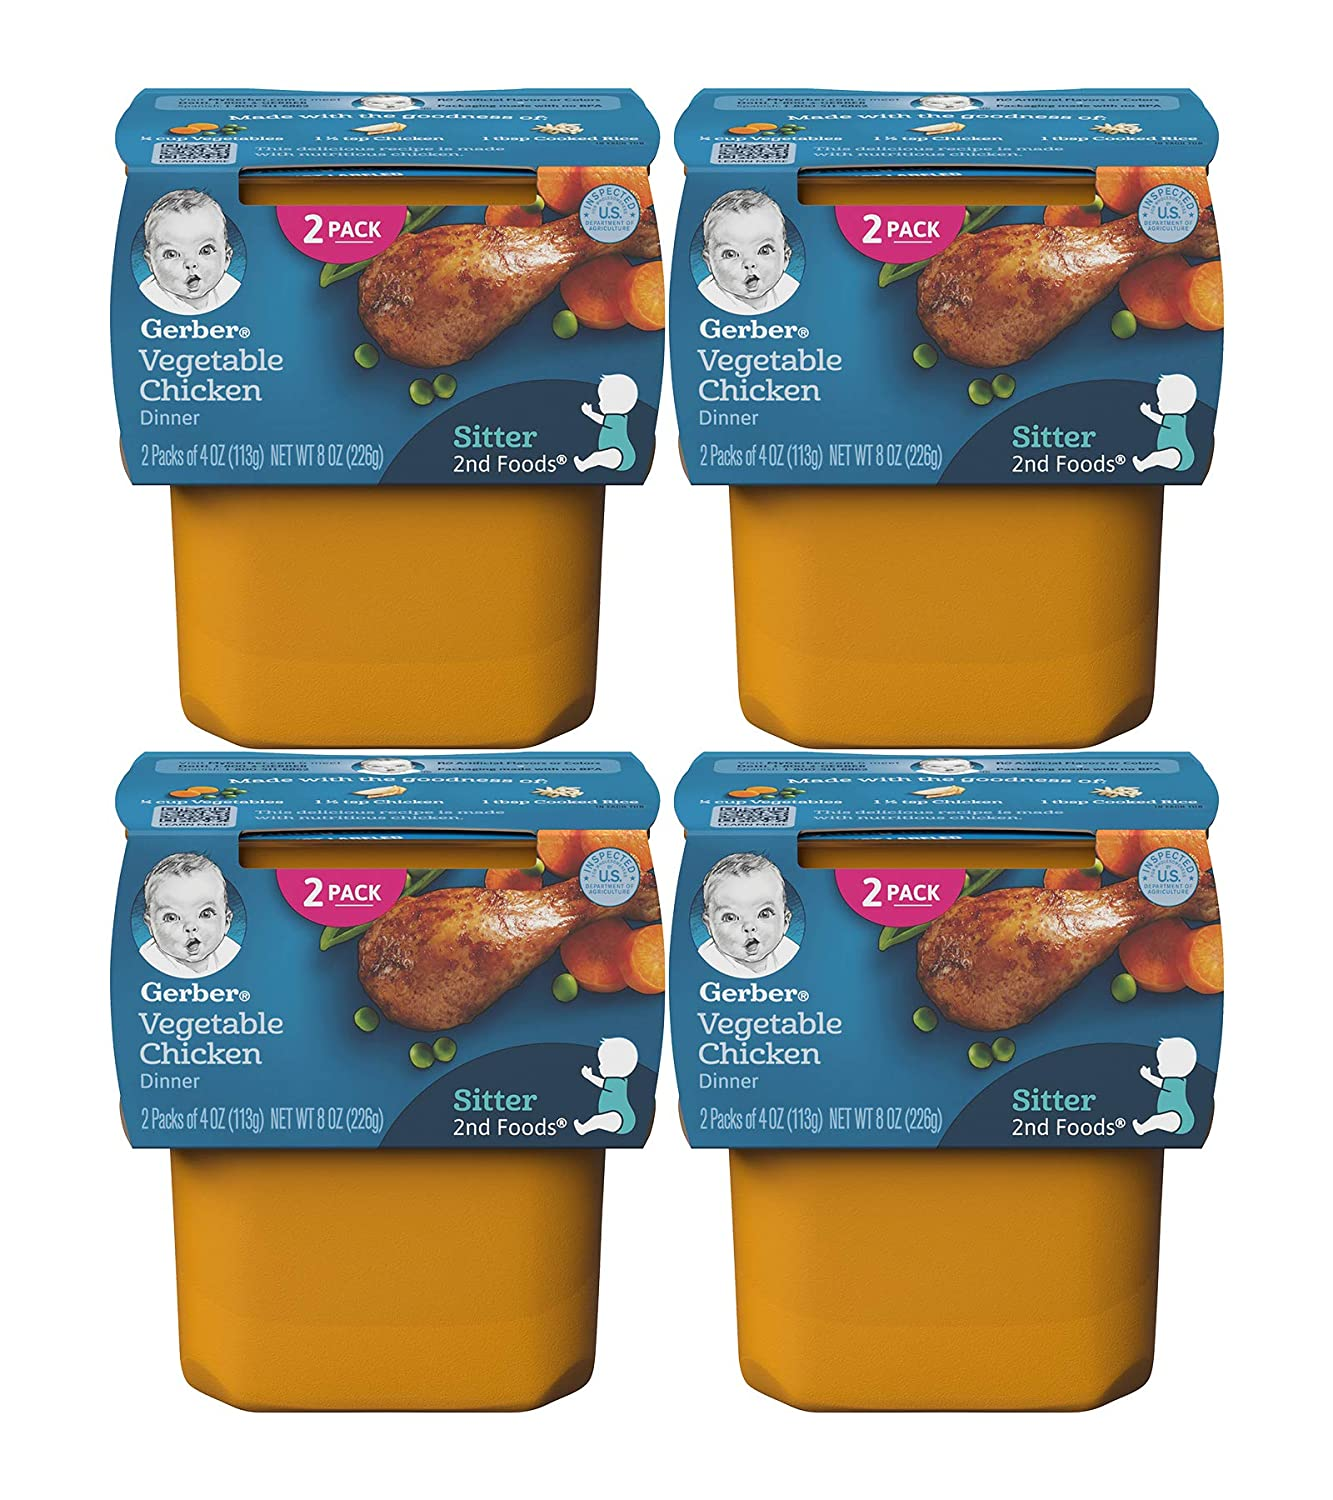 Gerber 2nd Foods, Vegetable Chicken Dinner, 4 OZ Tubs (2 CT/Pack) (Pack of 4)